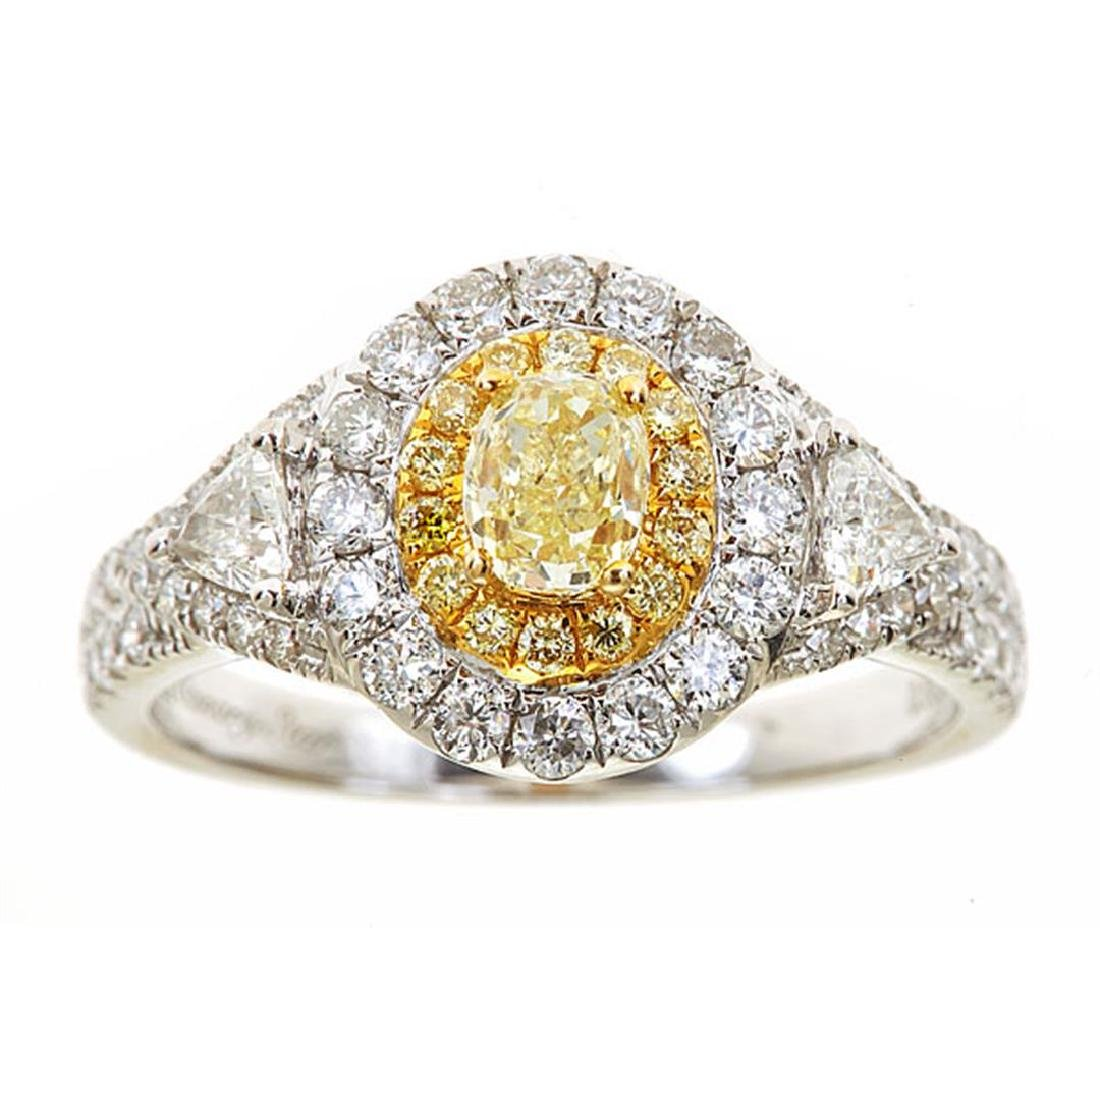 0.54 ctw Yellow and White Diamond Ring - 18KT White and